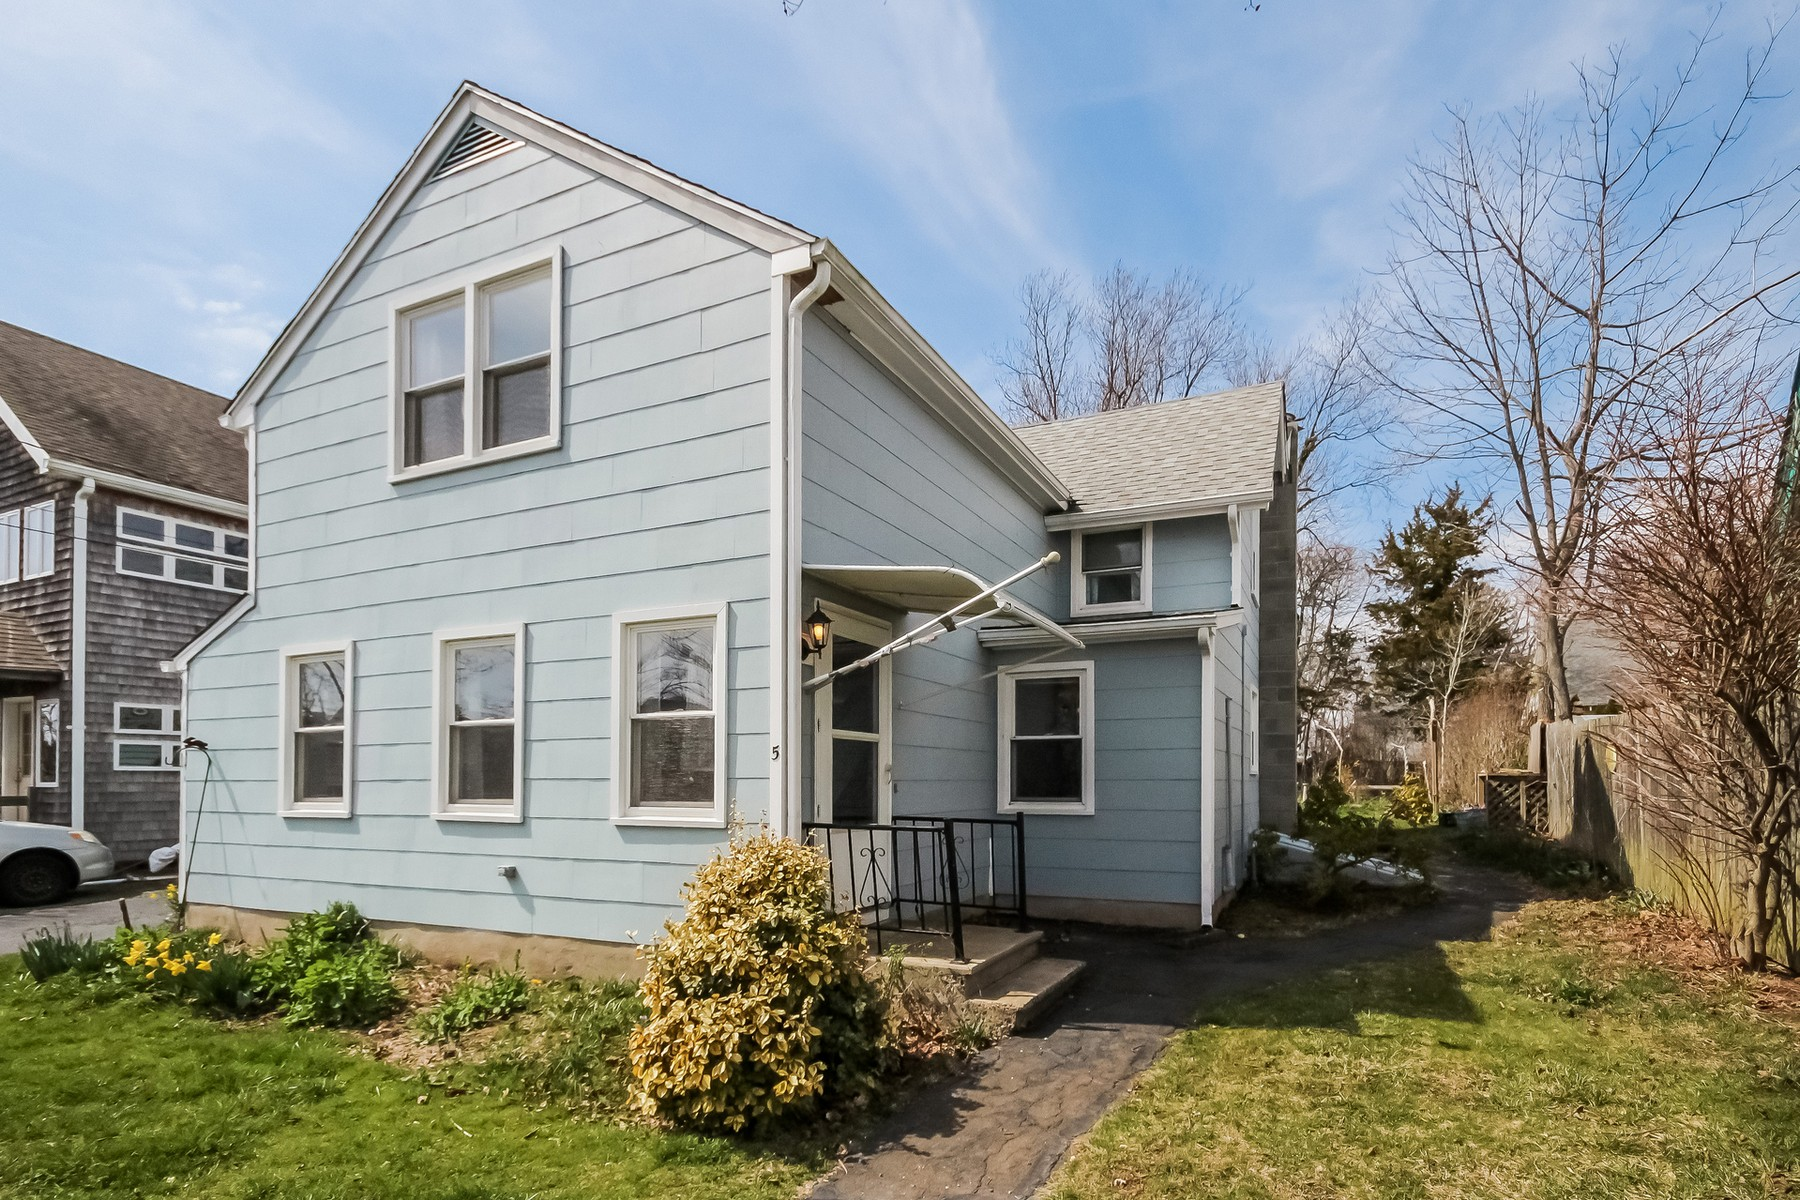 Single Family Home for Sale at Hilltop Cottage in Pawson Park 5 Maltby St Branford, Connecticut, 06405 United States